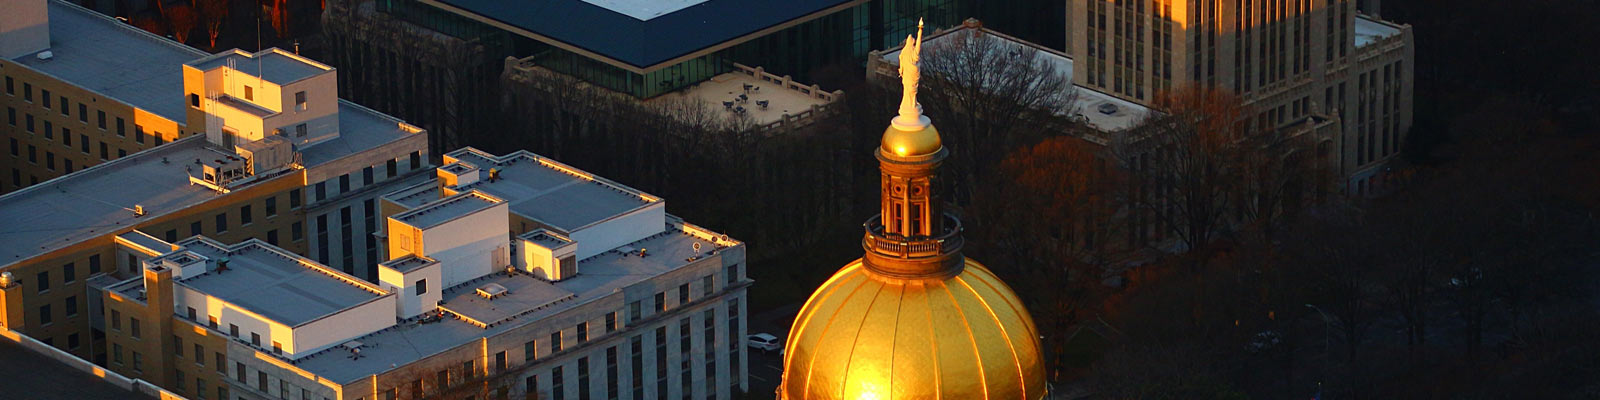 This is an image of the capital building in Georgia. ASTA-USA offers professional translation services in this city.